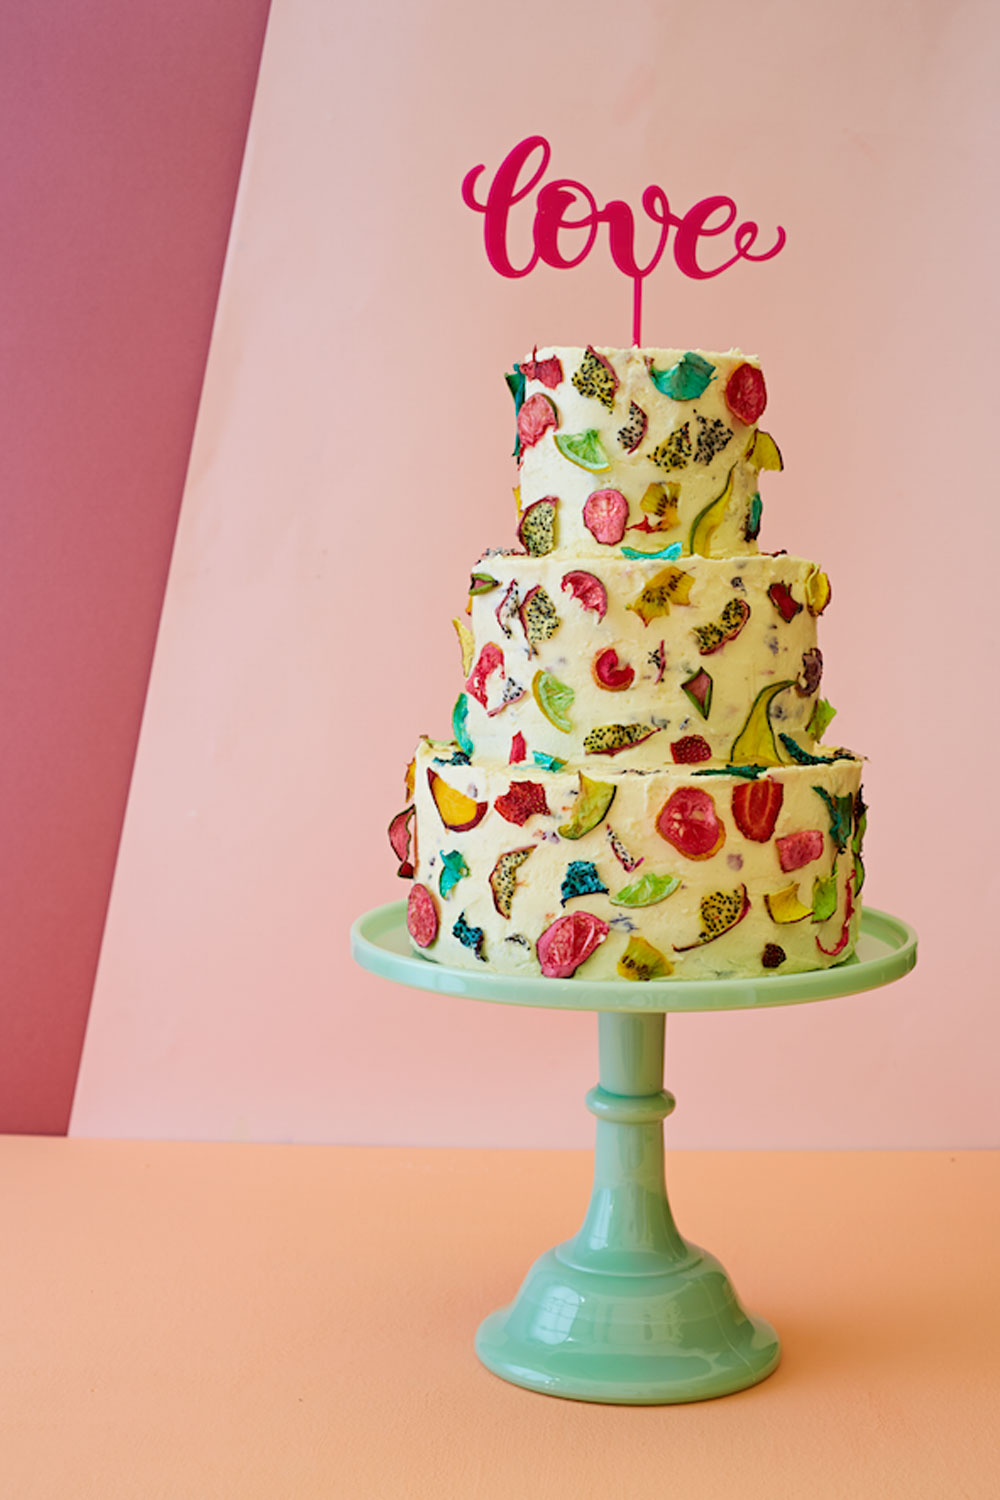 How To Decorate A Wedding Or Celebration Cake With Edible